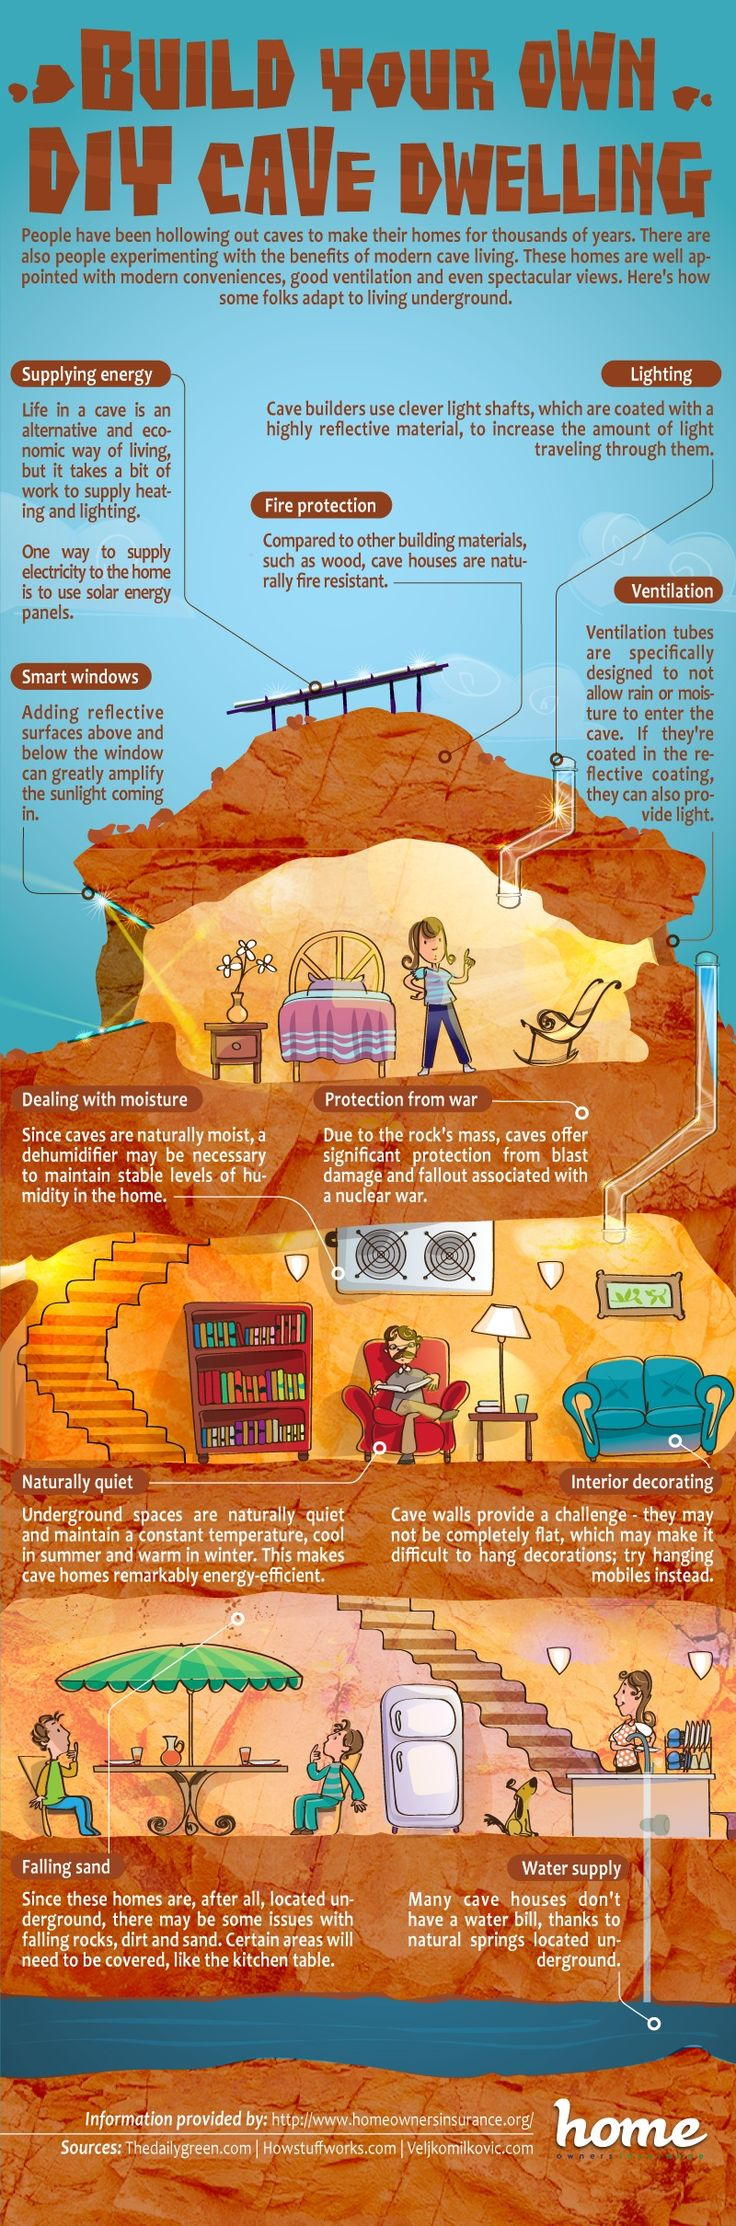 Create your own cavern inside your house. / Crea tu propia caverna adentro de tu casa. #XplorersStuff